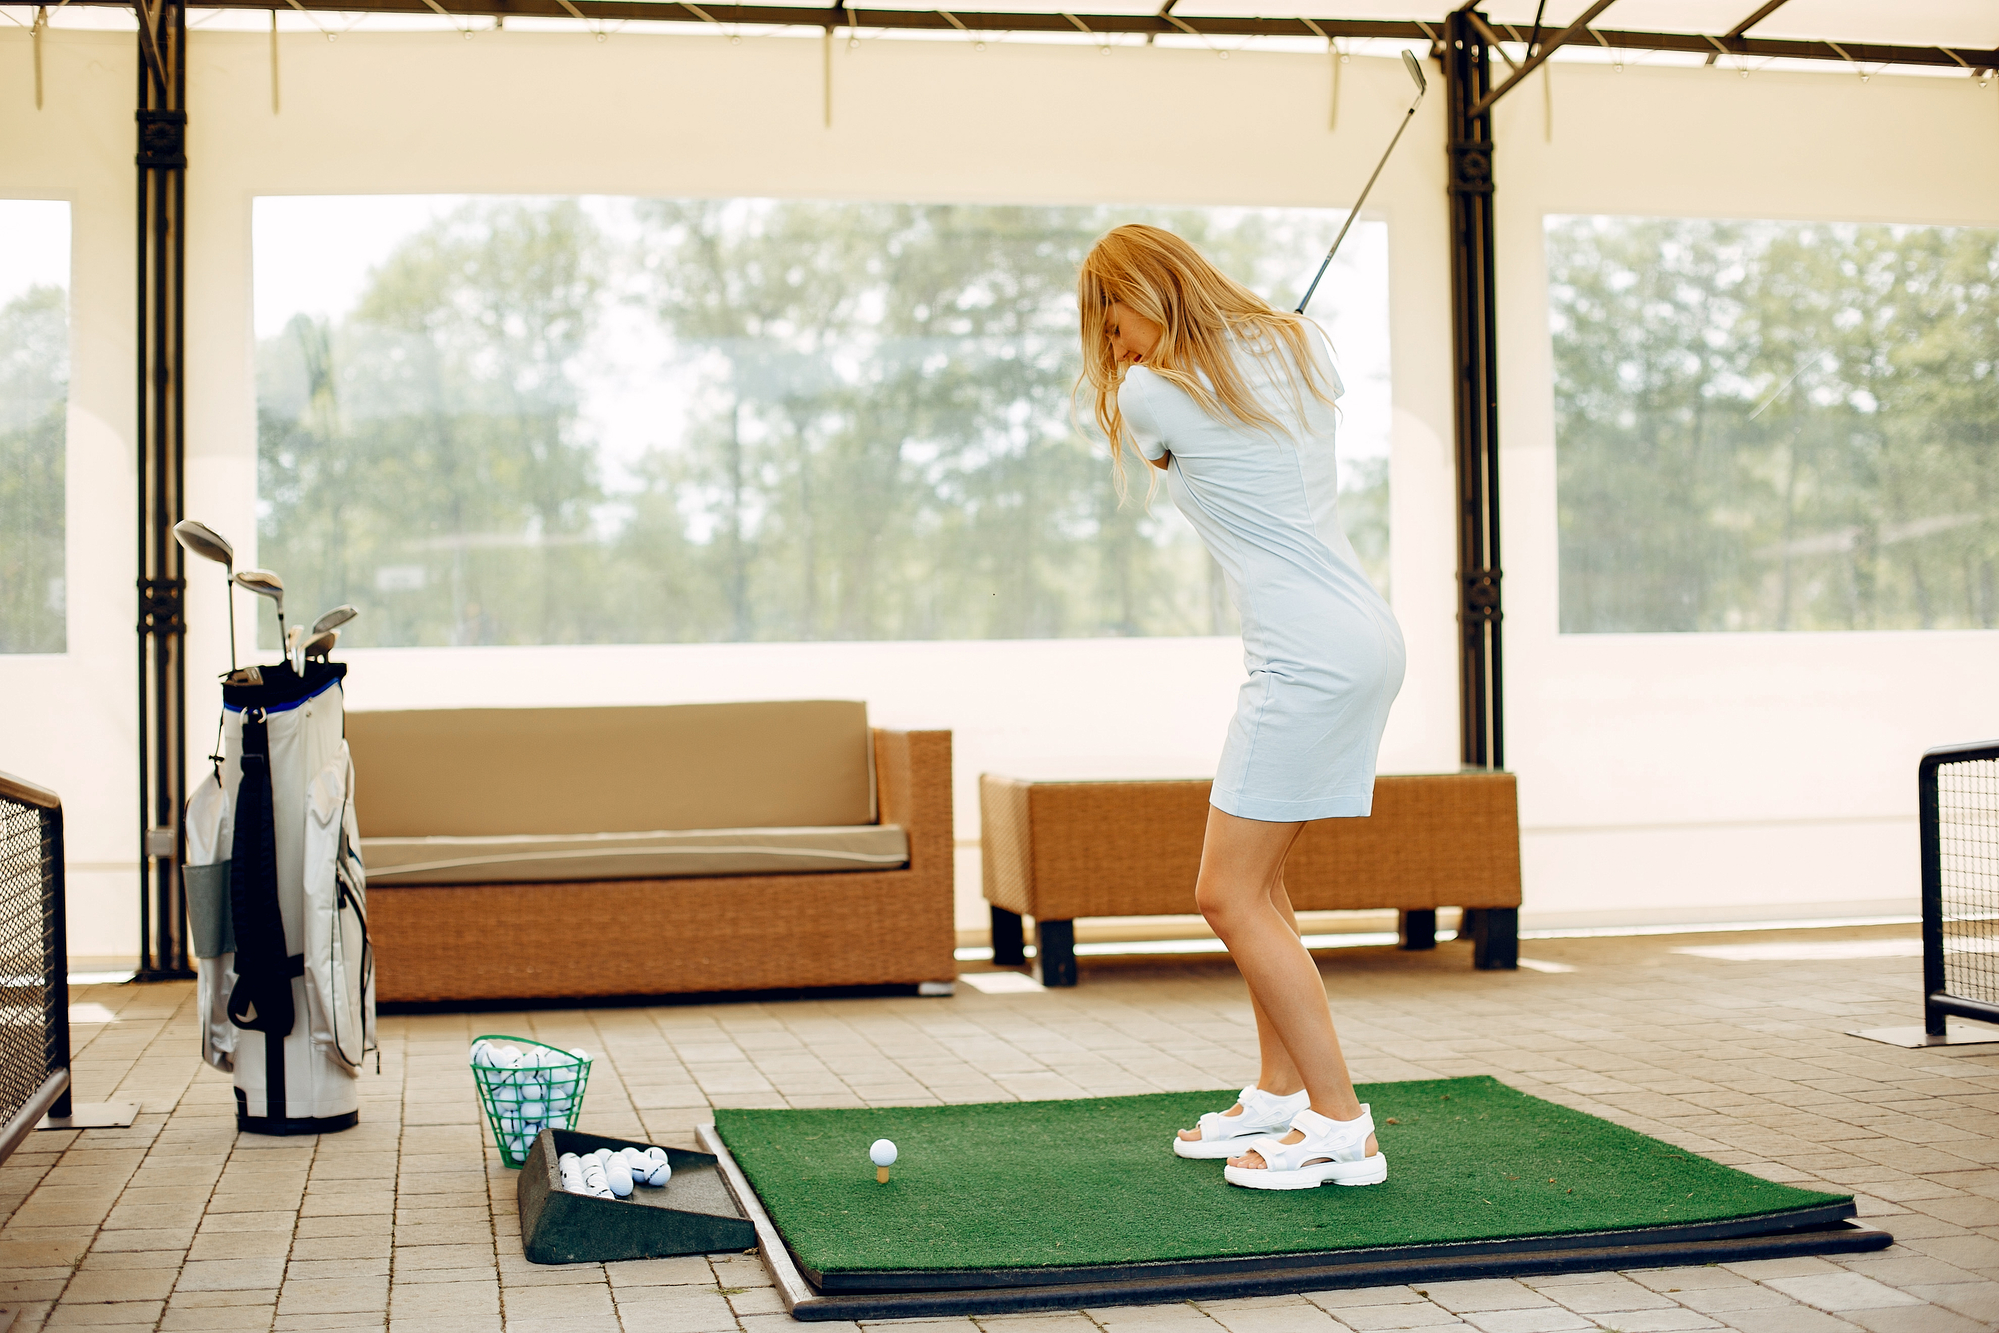 Is Hitting Golf Balls Into A Net Good Practice?